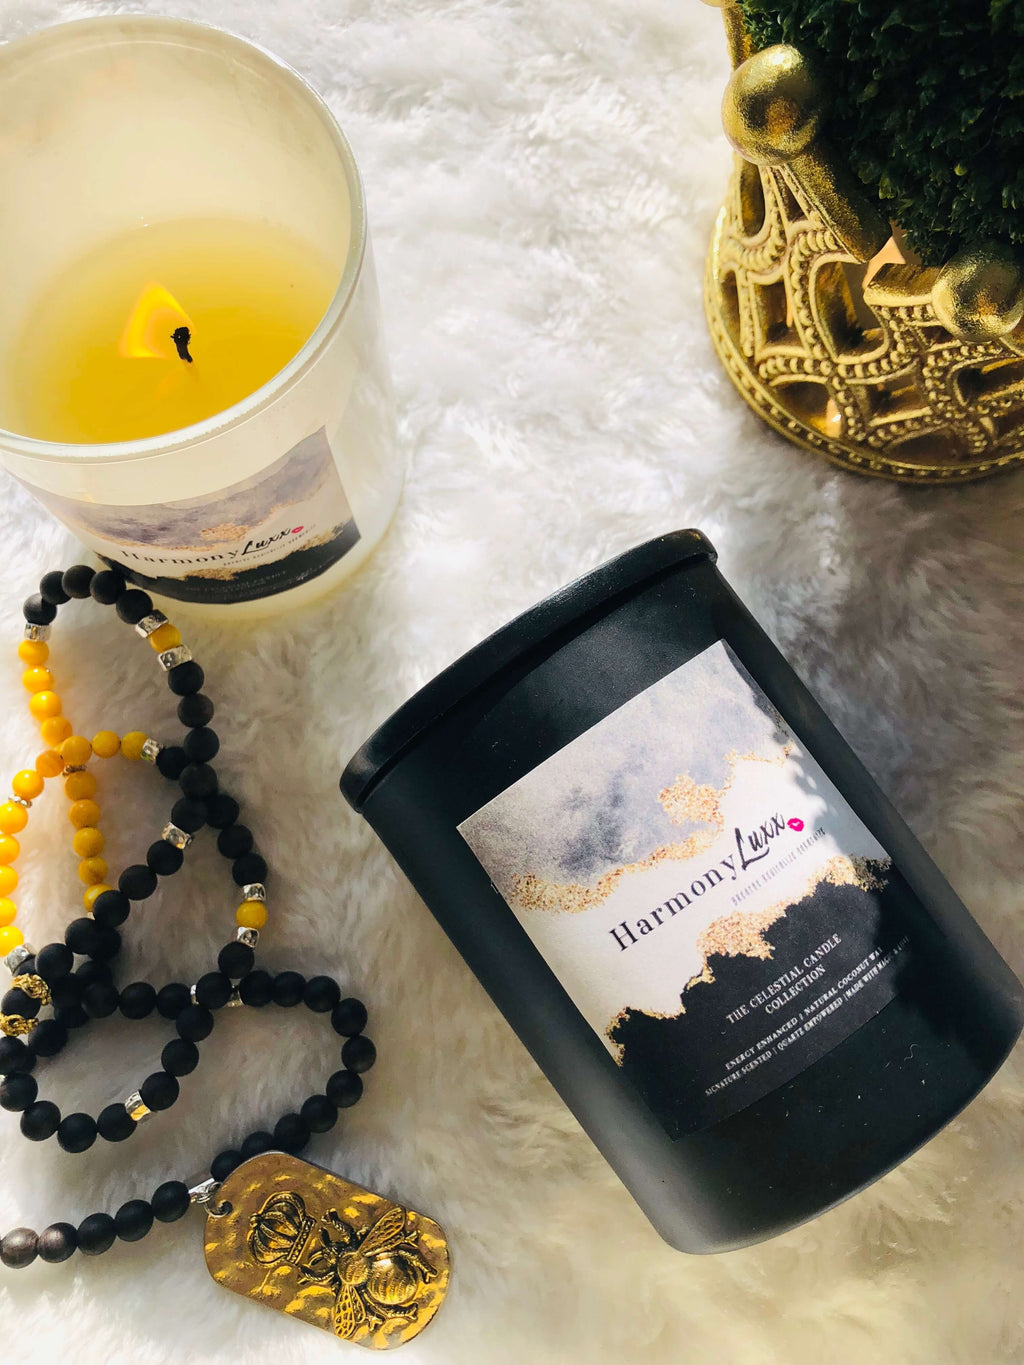 HARMONY LUXX 10 oz GODDESS CRYSTAL CANDLE | All Natural Non-Toxic Quartz Crystal Empowered Goddess Candle